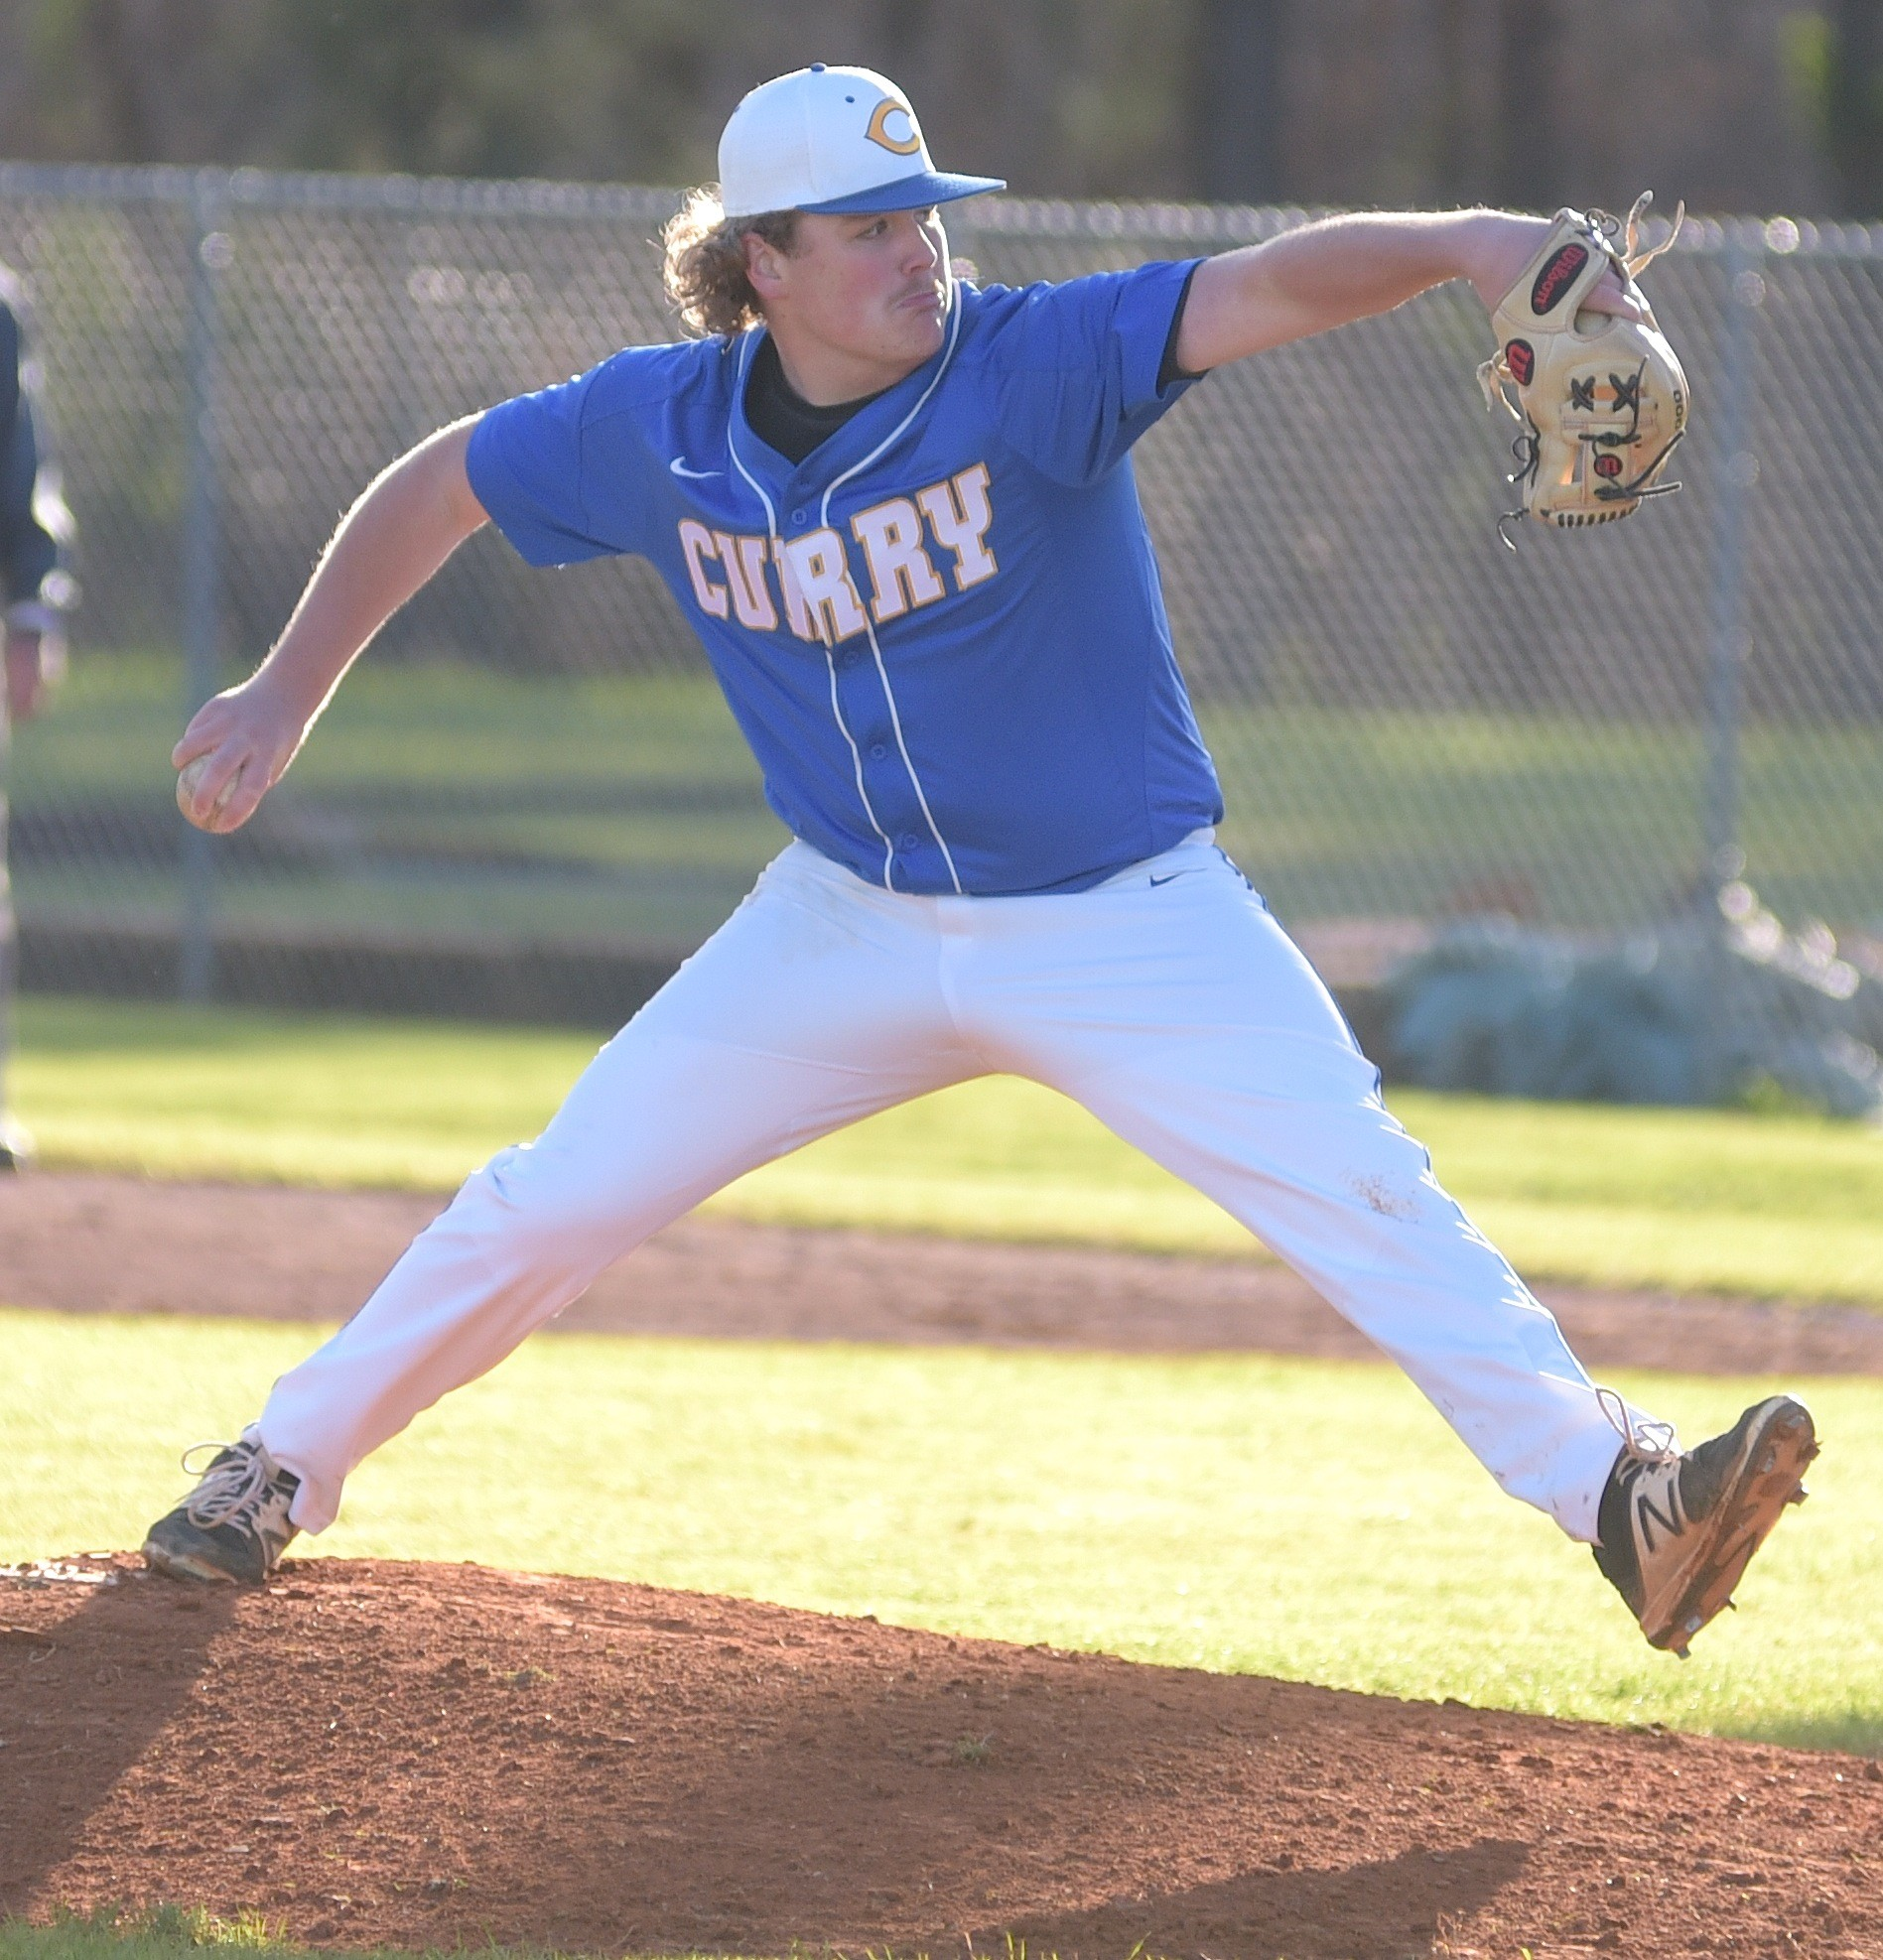 Curry's Hunter Bates throws a pitch against Cordova during their game in the Walker County Baseball Tournament at Curry High School on Tuesday. Curry advanced to Thursday's championship game with a 17-8 victory.